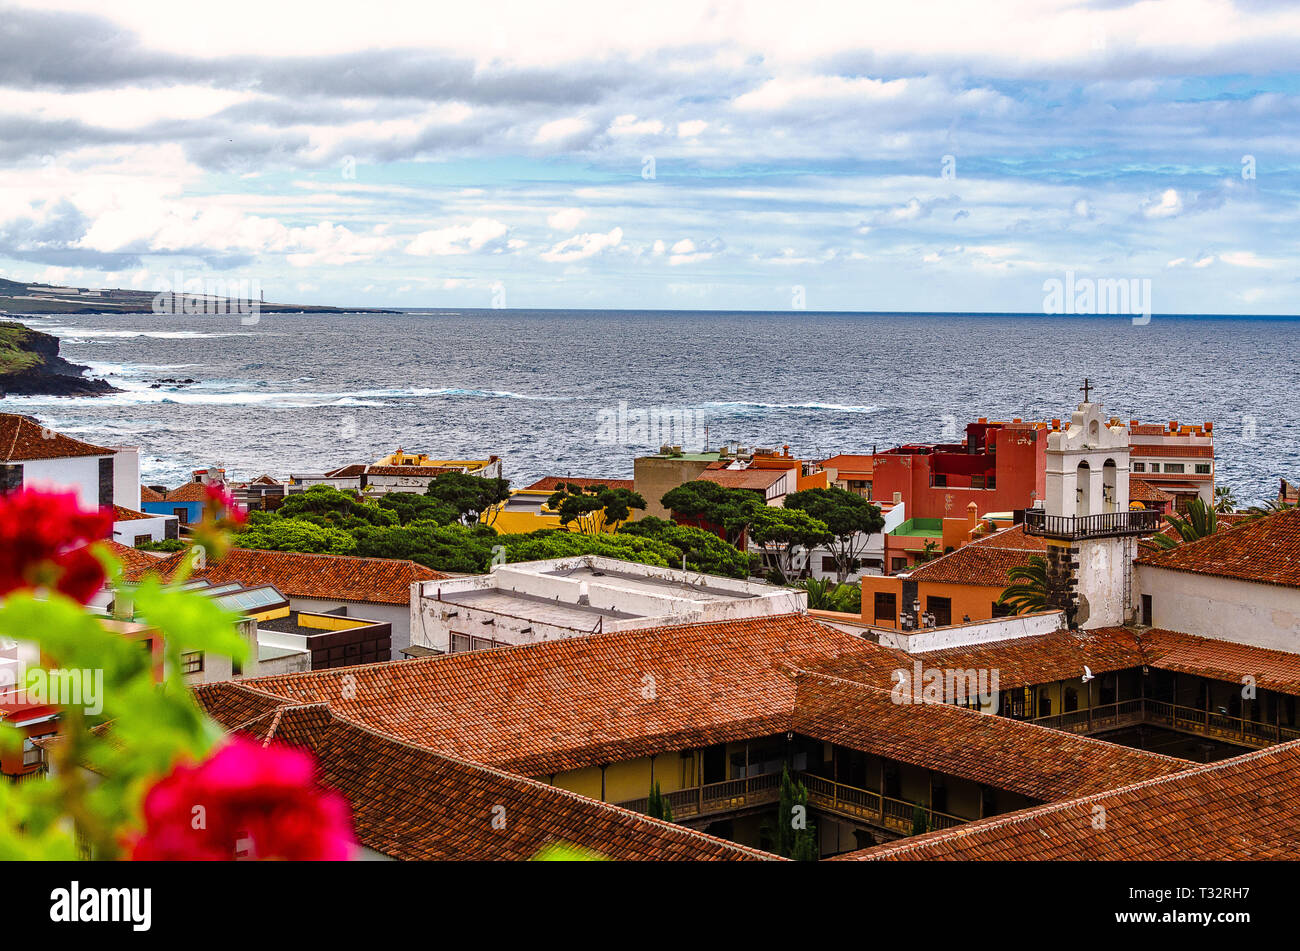 Garachico, Spain, 02/03/2015 - In the middle of the lively village, in the narrow Calle Estéban de Ponte, is the Franciscan Convent of San Francisco,  - Stock Image